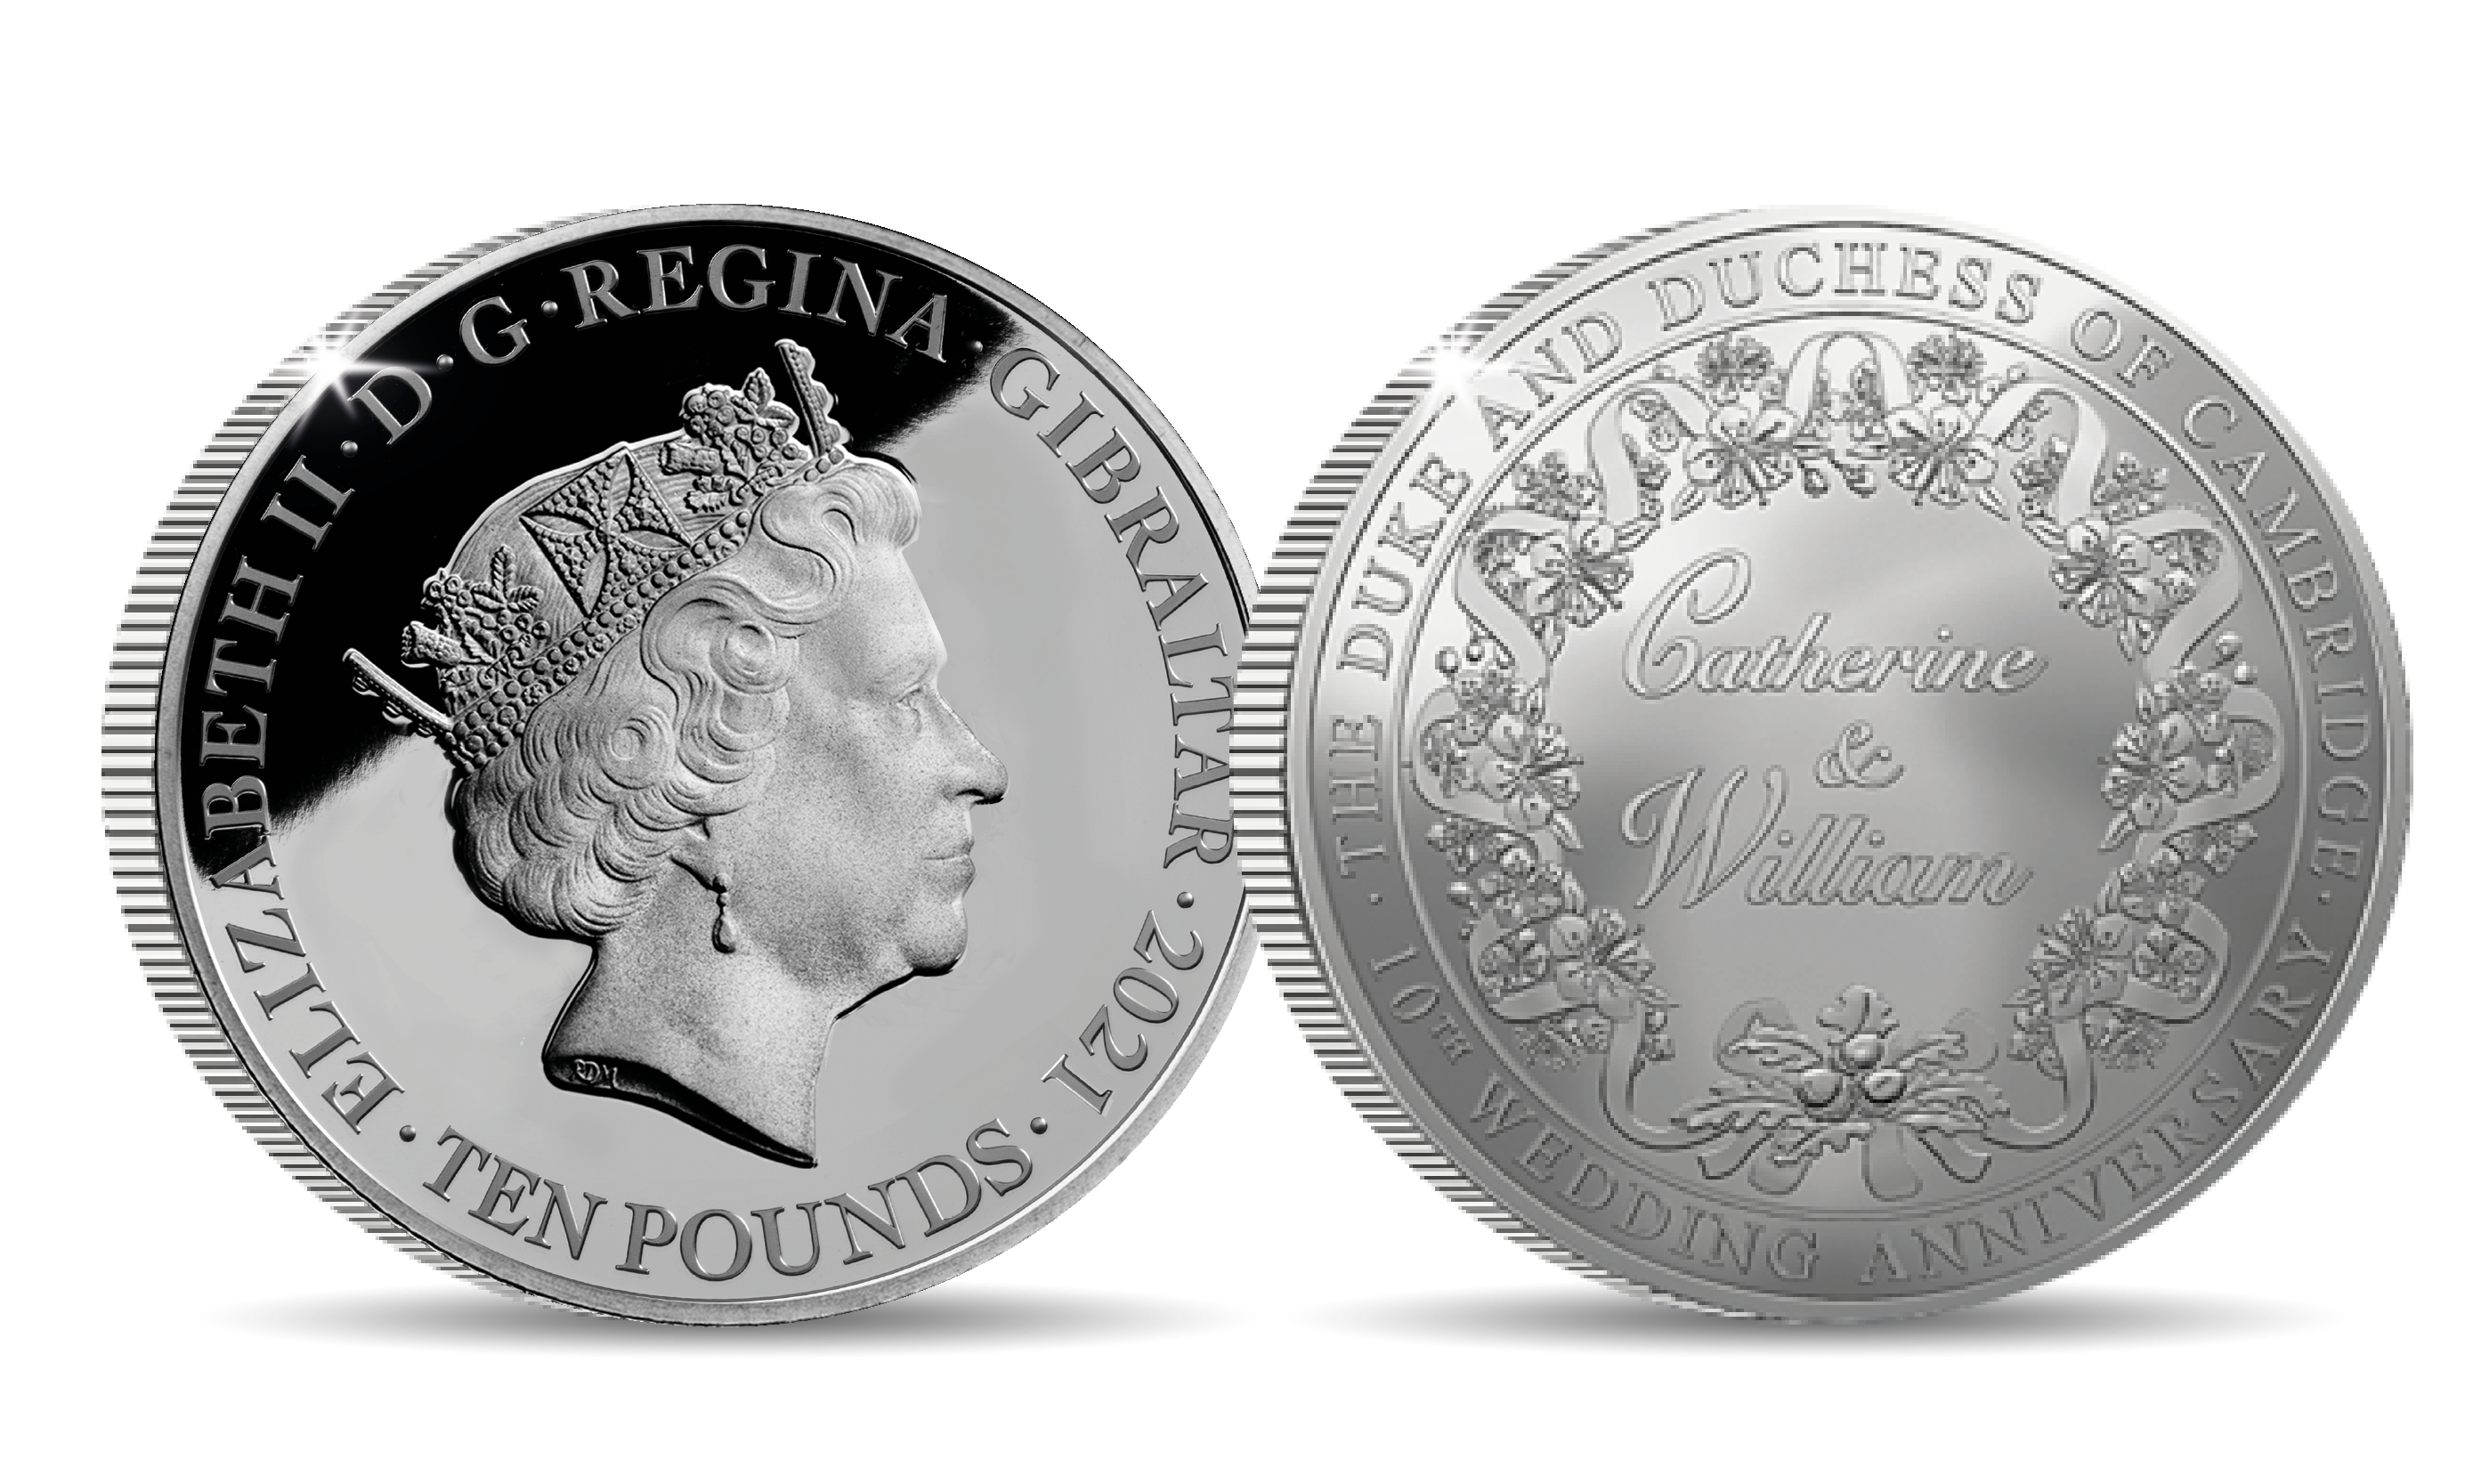 William and Catherine Silver 5oz Sovereign